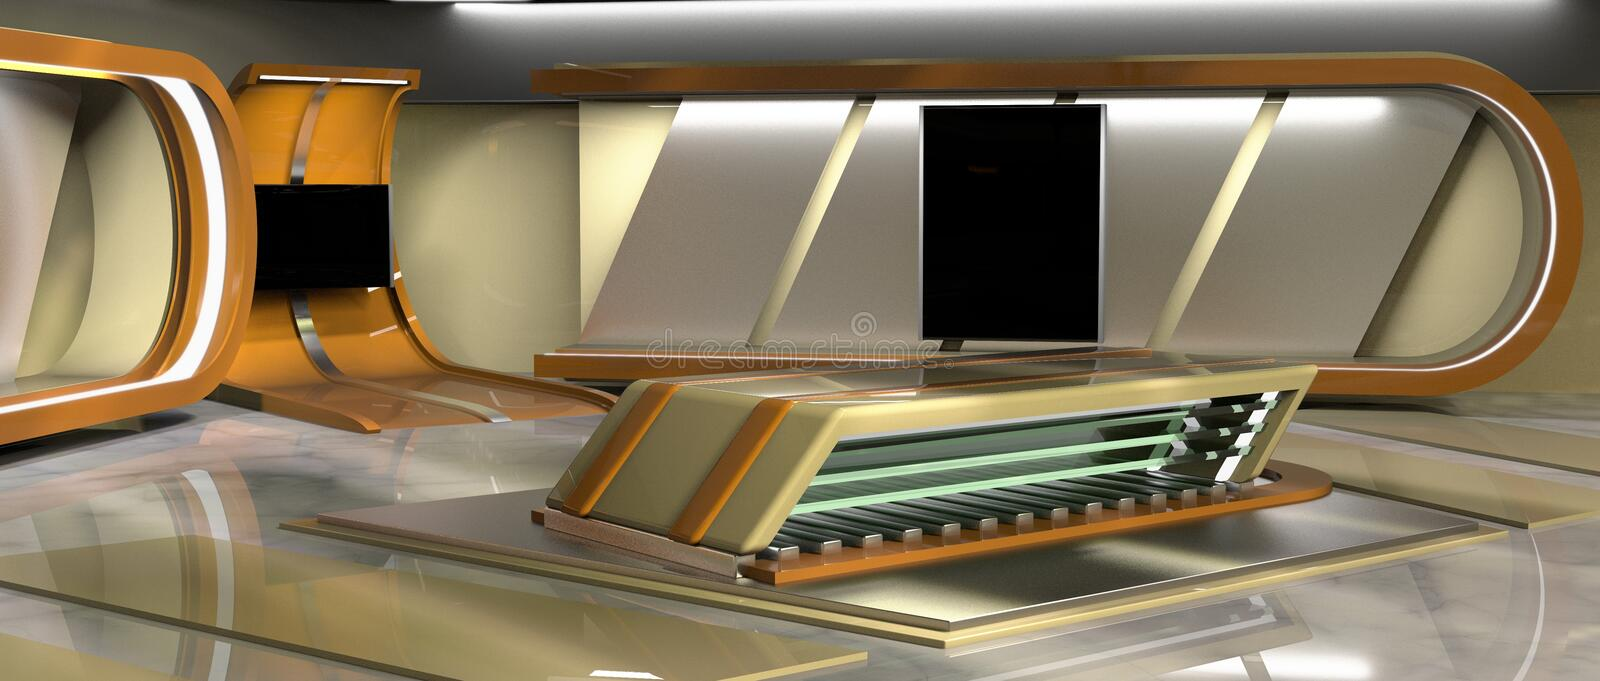 News Virtual Set. CGI 3D rendered Virtual Set for news and TV, left view vector illustration